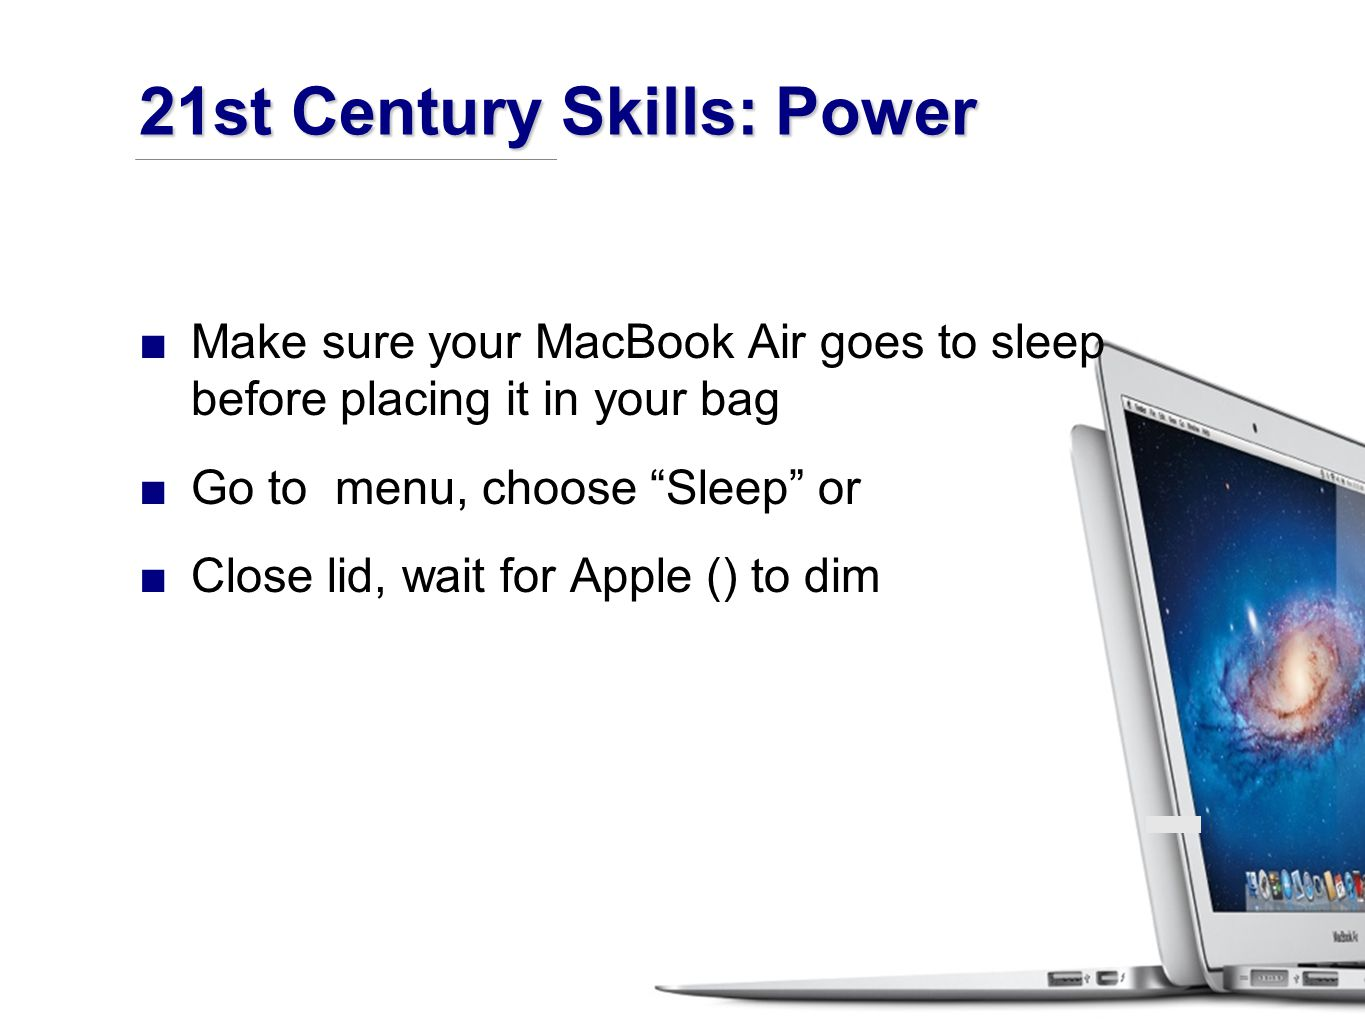 ■Make sure your MacBook Air goes to sleep before placing it in your bag ■Go to menu, choose Sleep or ■Close lid, wait for Apple () to dim